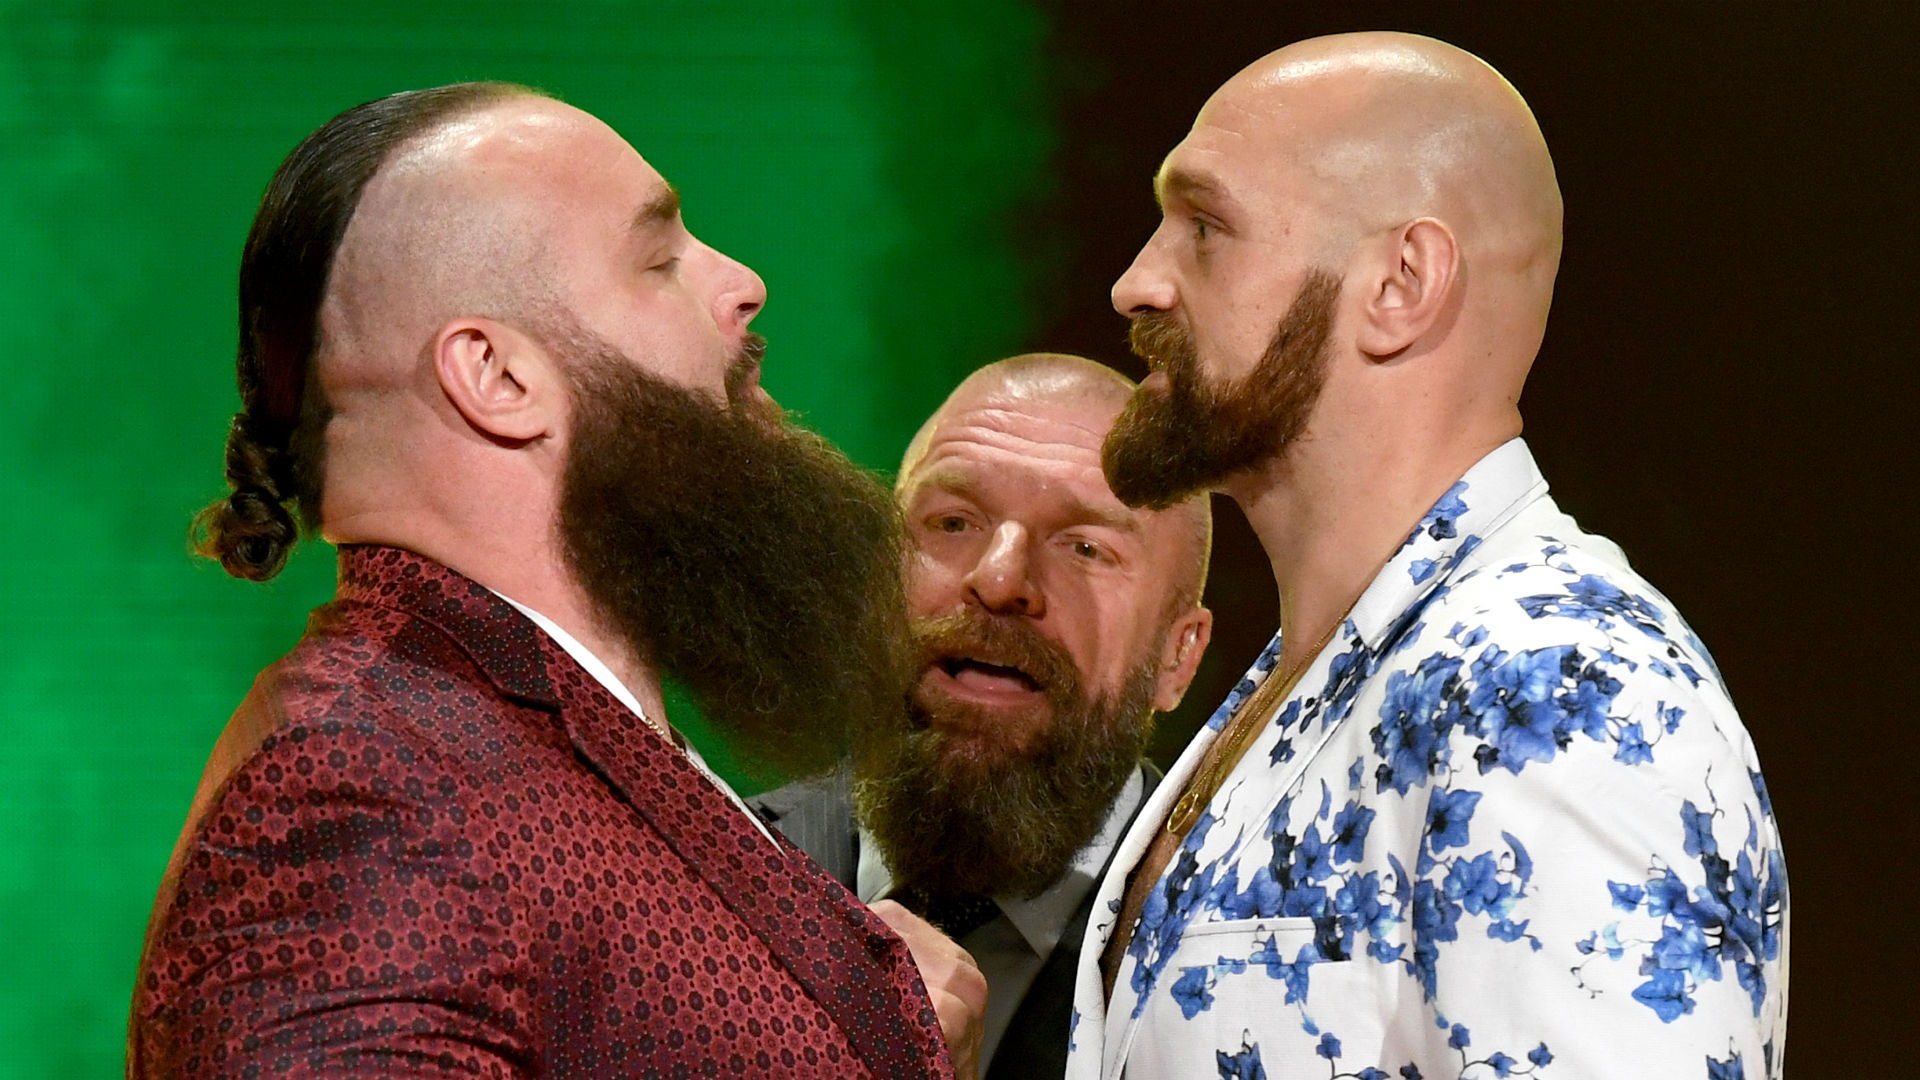 Triple H isn't sure what kind of match Tyson Fury vs. Braun Strowman will be, but he's certain what it won't be